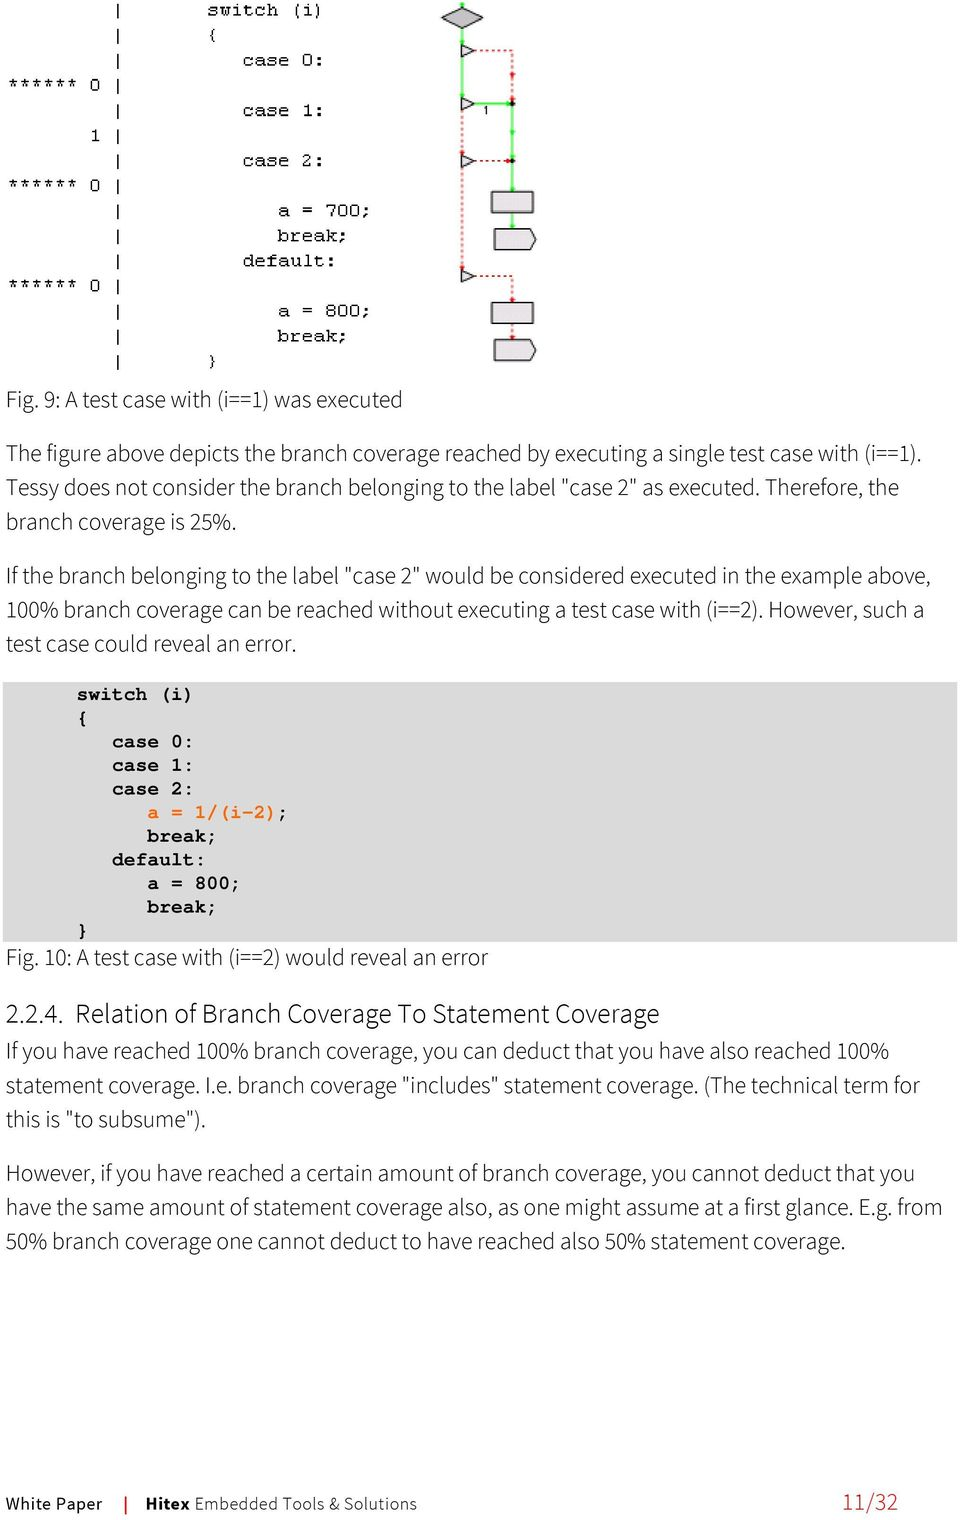 "If the branch belonging to the label ""case 2"" would be considered executed in the example above, 100% branch coverage can be reached without executing a test case with (i==2)."